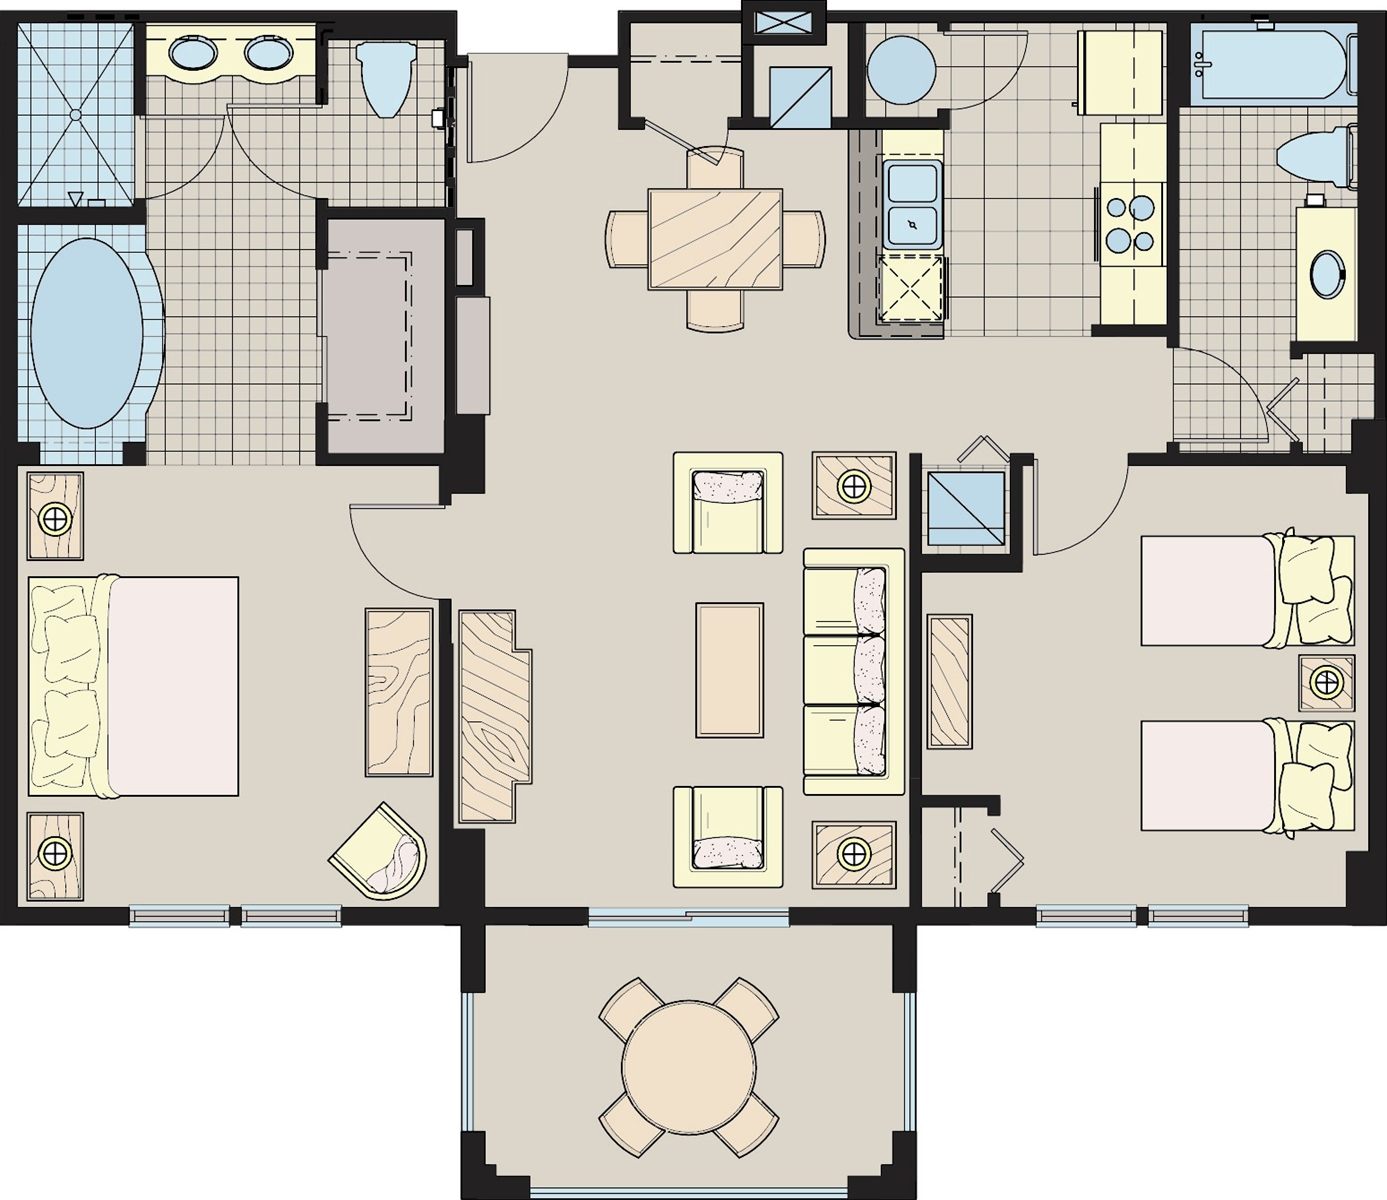 Floor Plan for Disney View Top Floor Condo at Lake Buena Vista Resort for Sale $309,000 with only 30% down payment